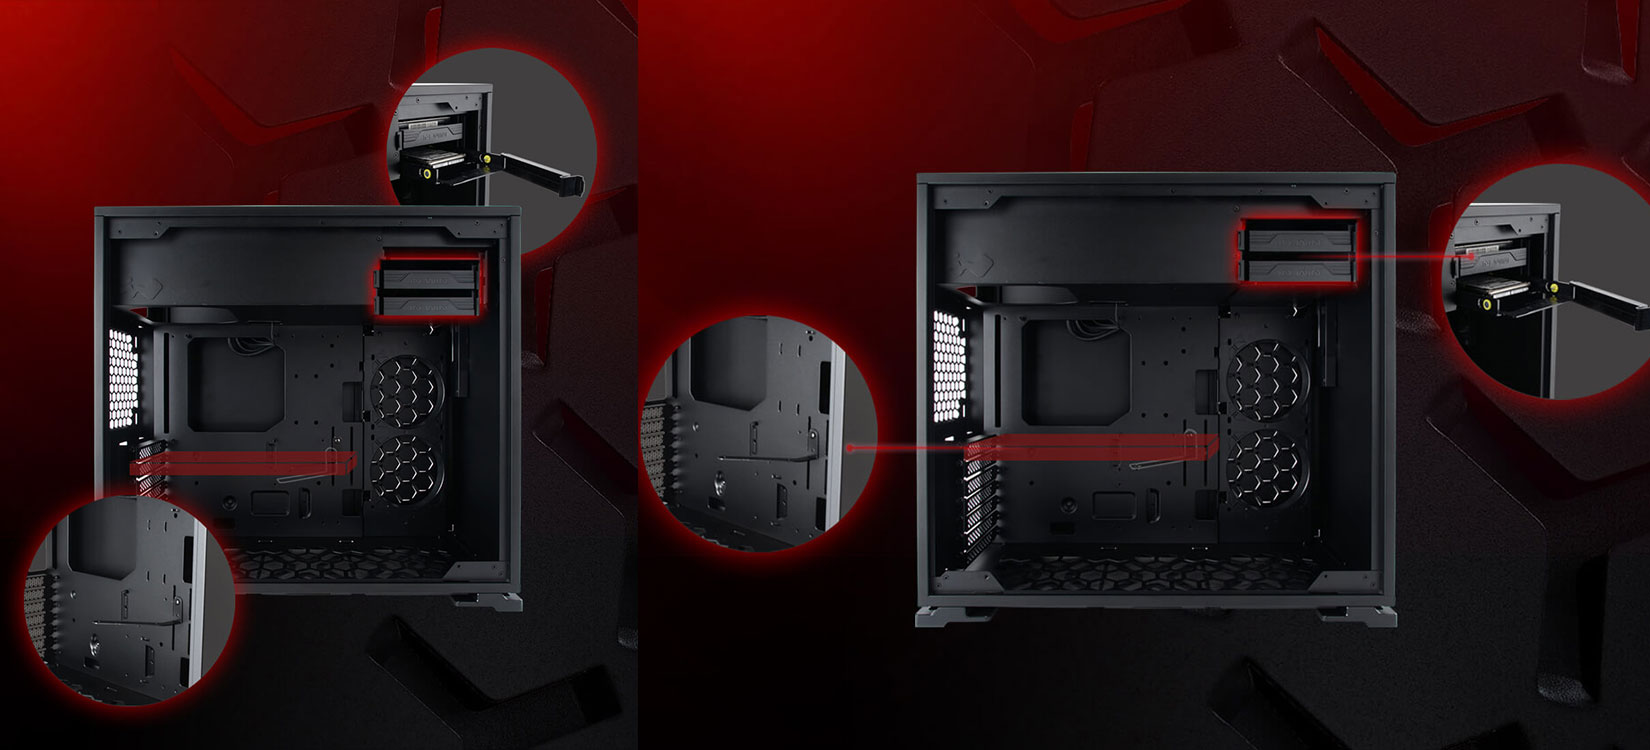 Day-Du-Cong-Ket-Noi-vo-case-inwin-101-black-full-side-tempered-glass-mid-tower-mau-den